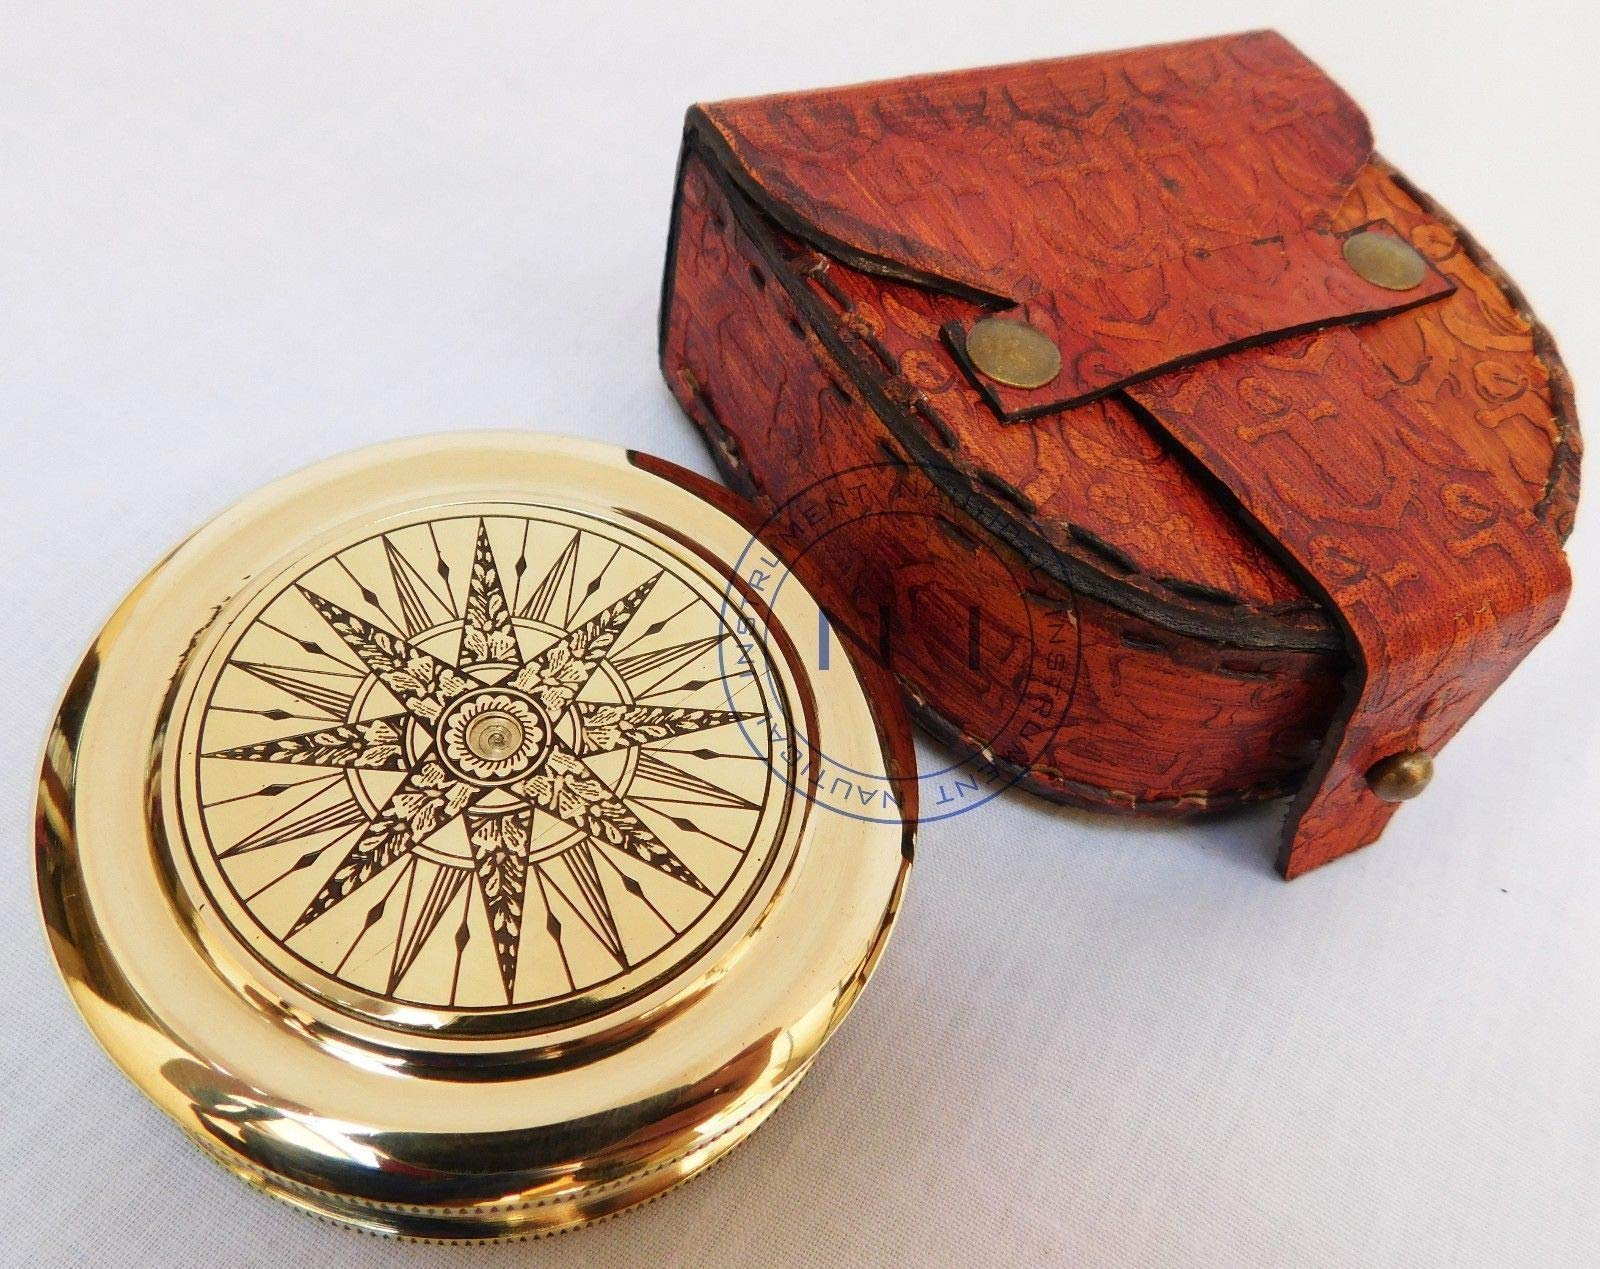 Sara Nautical Marine Solid Brass Marine Compass Robert Frost Poem Collectible Item for Gifted by Sara Nautical